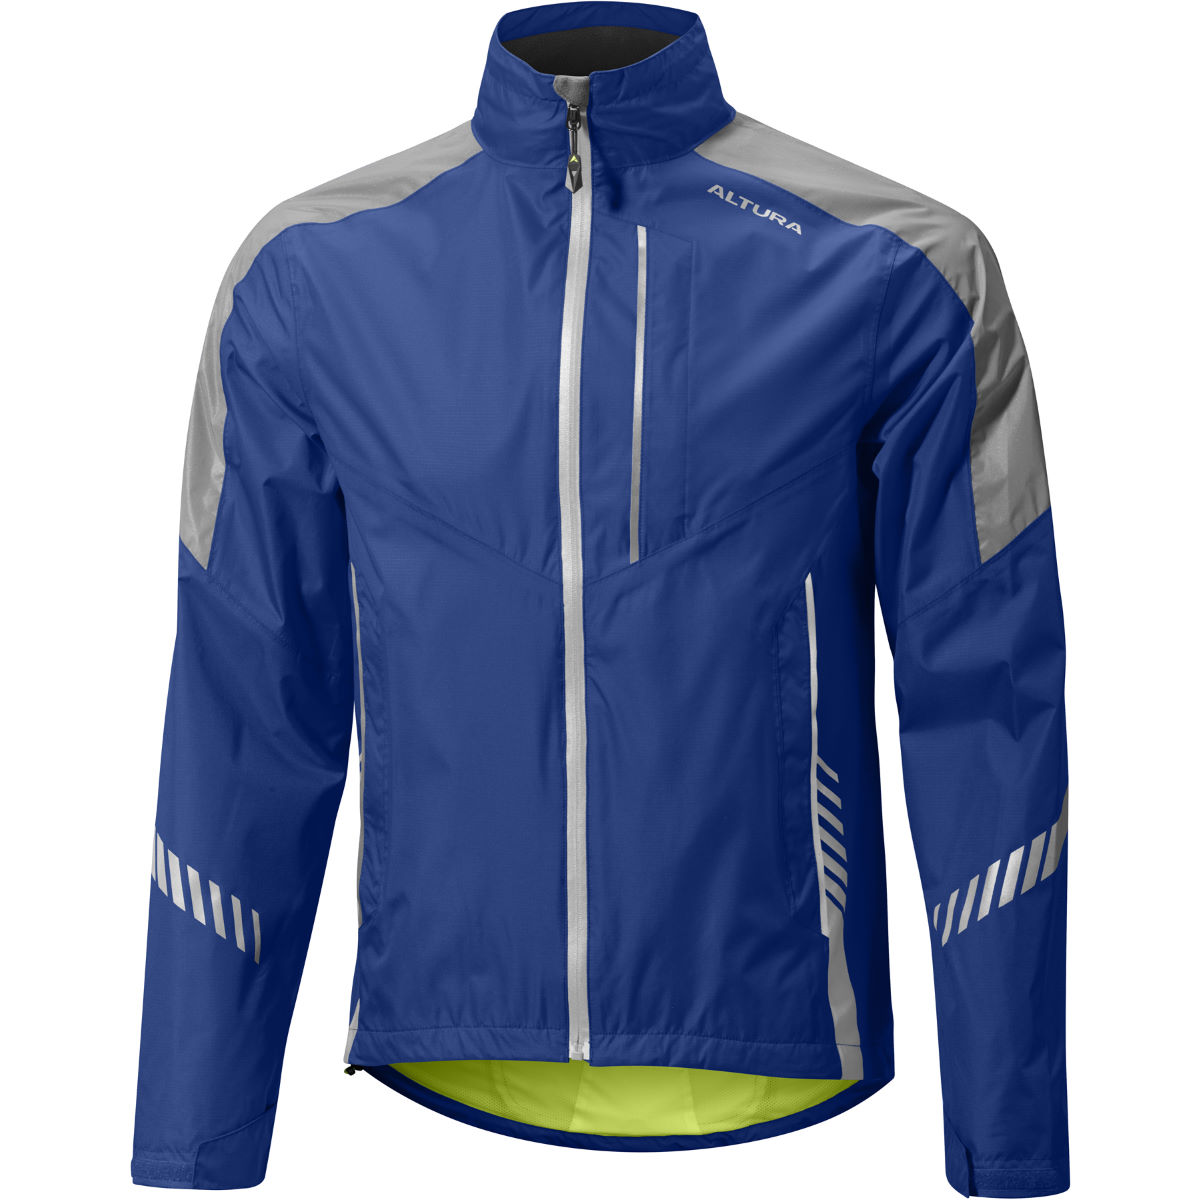 Chaqueta impermeable Altura Nightvision 3 - Impermeables - ciclismo